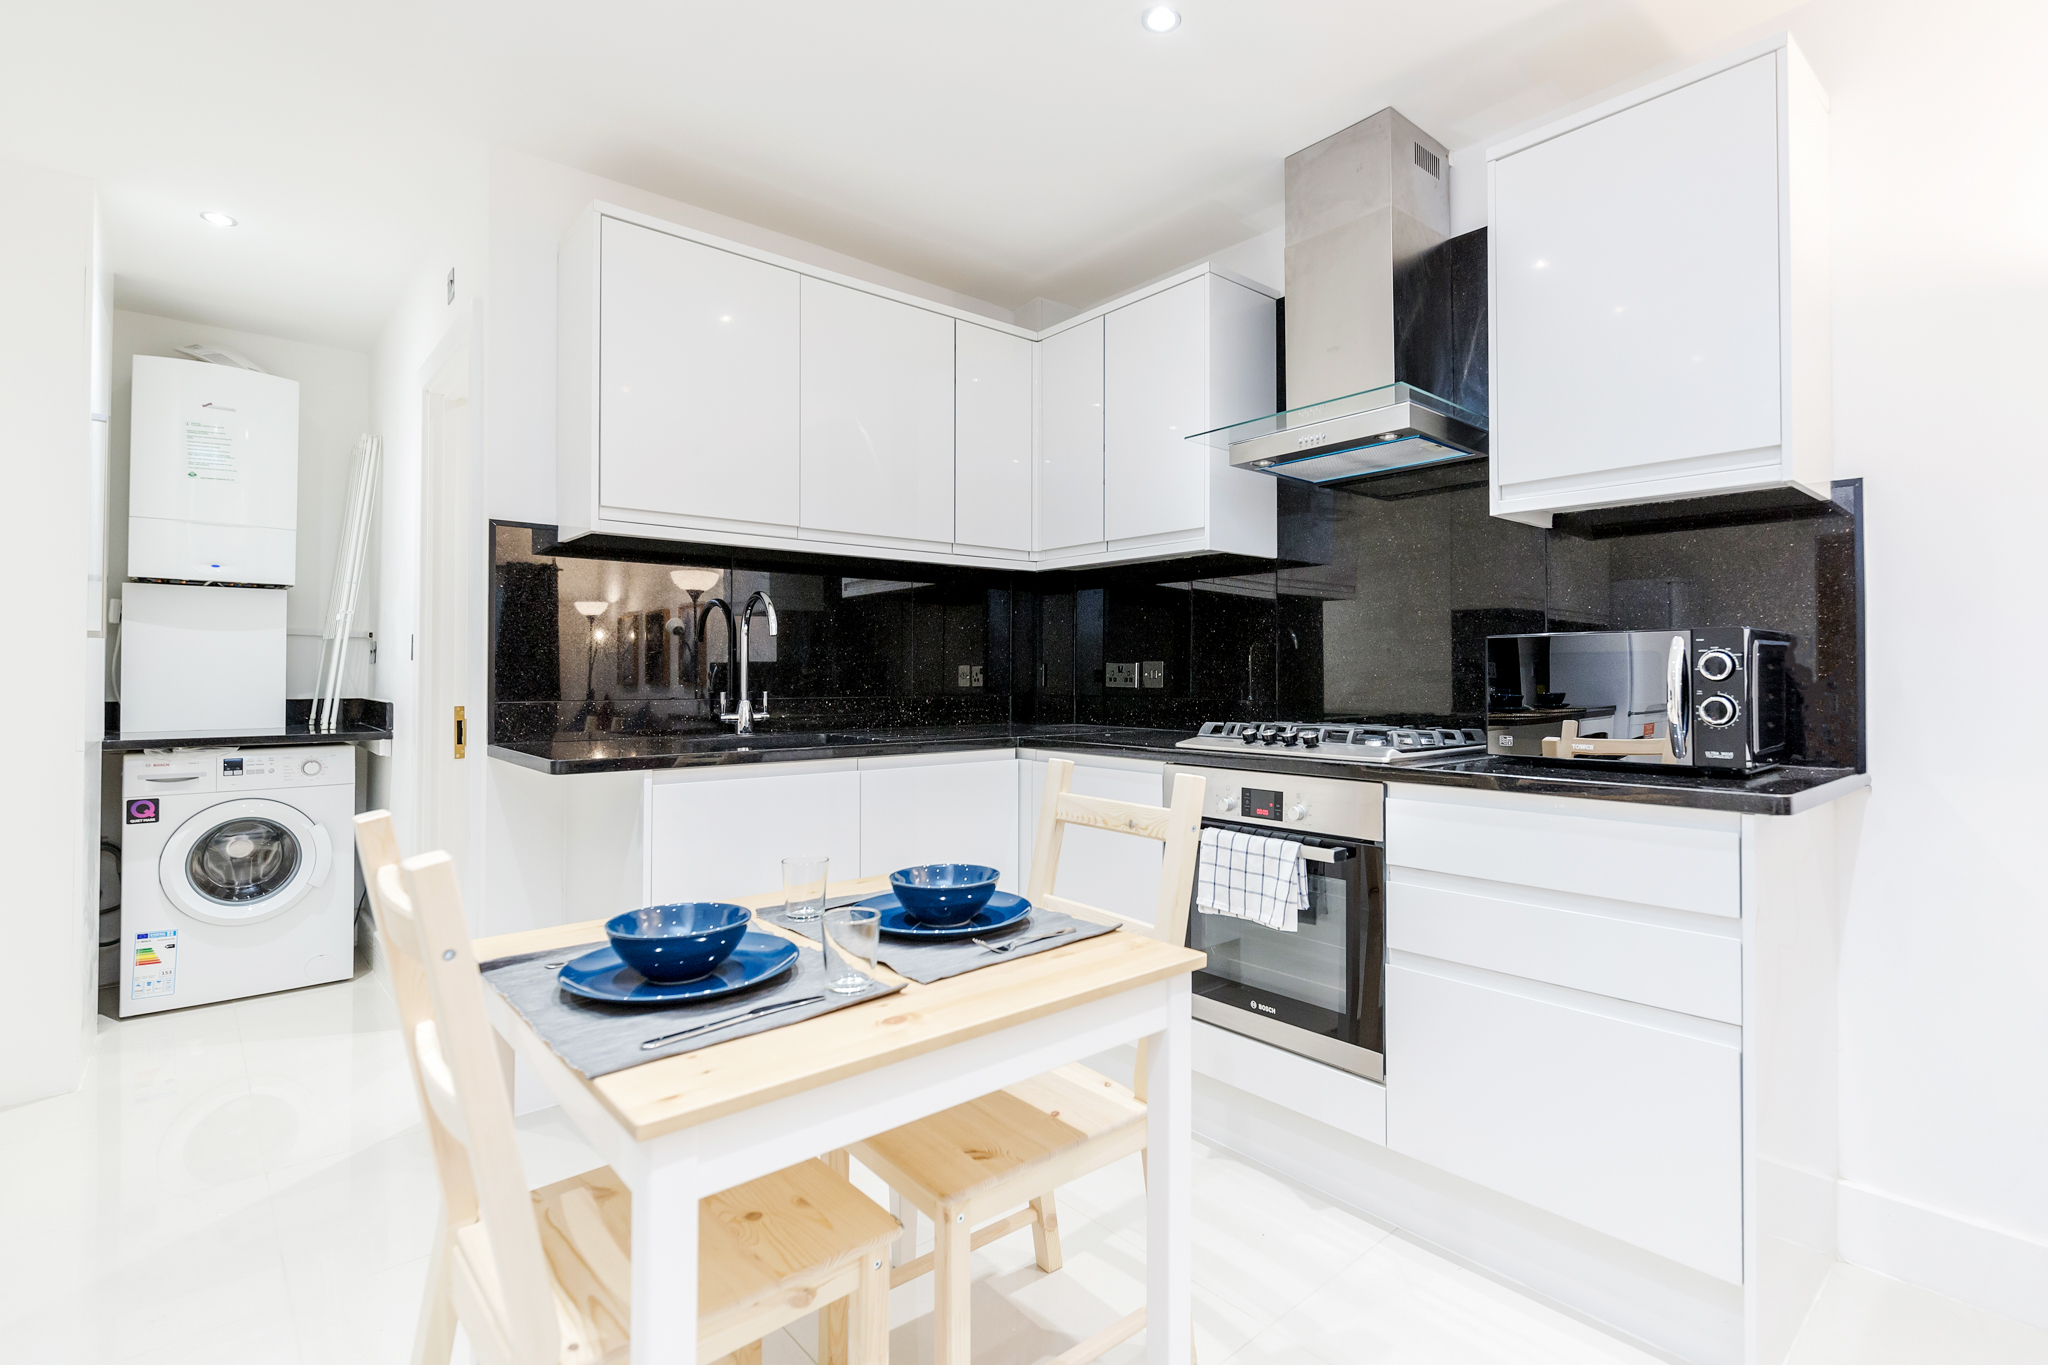 Stunning 1 bedroom flat with private garden minutes away from Tower Bridge photo 20466669